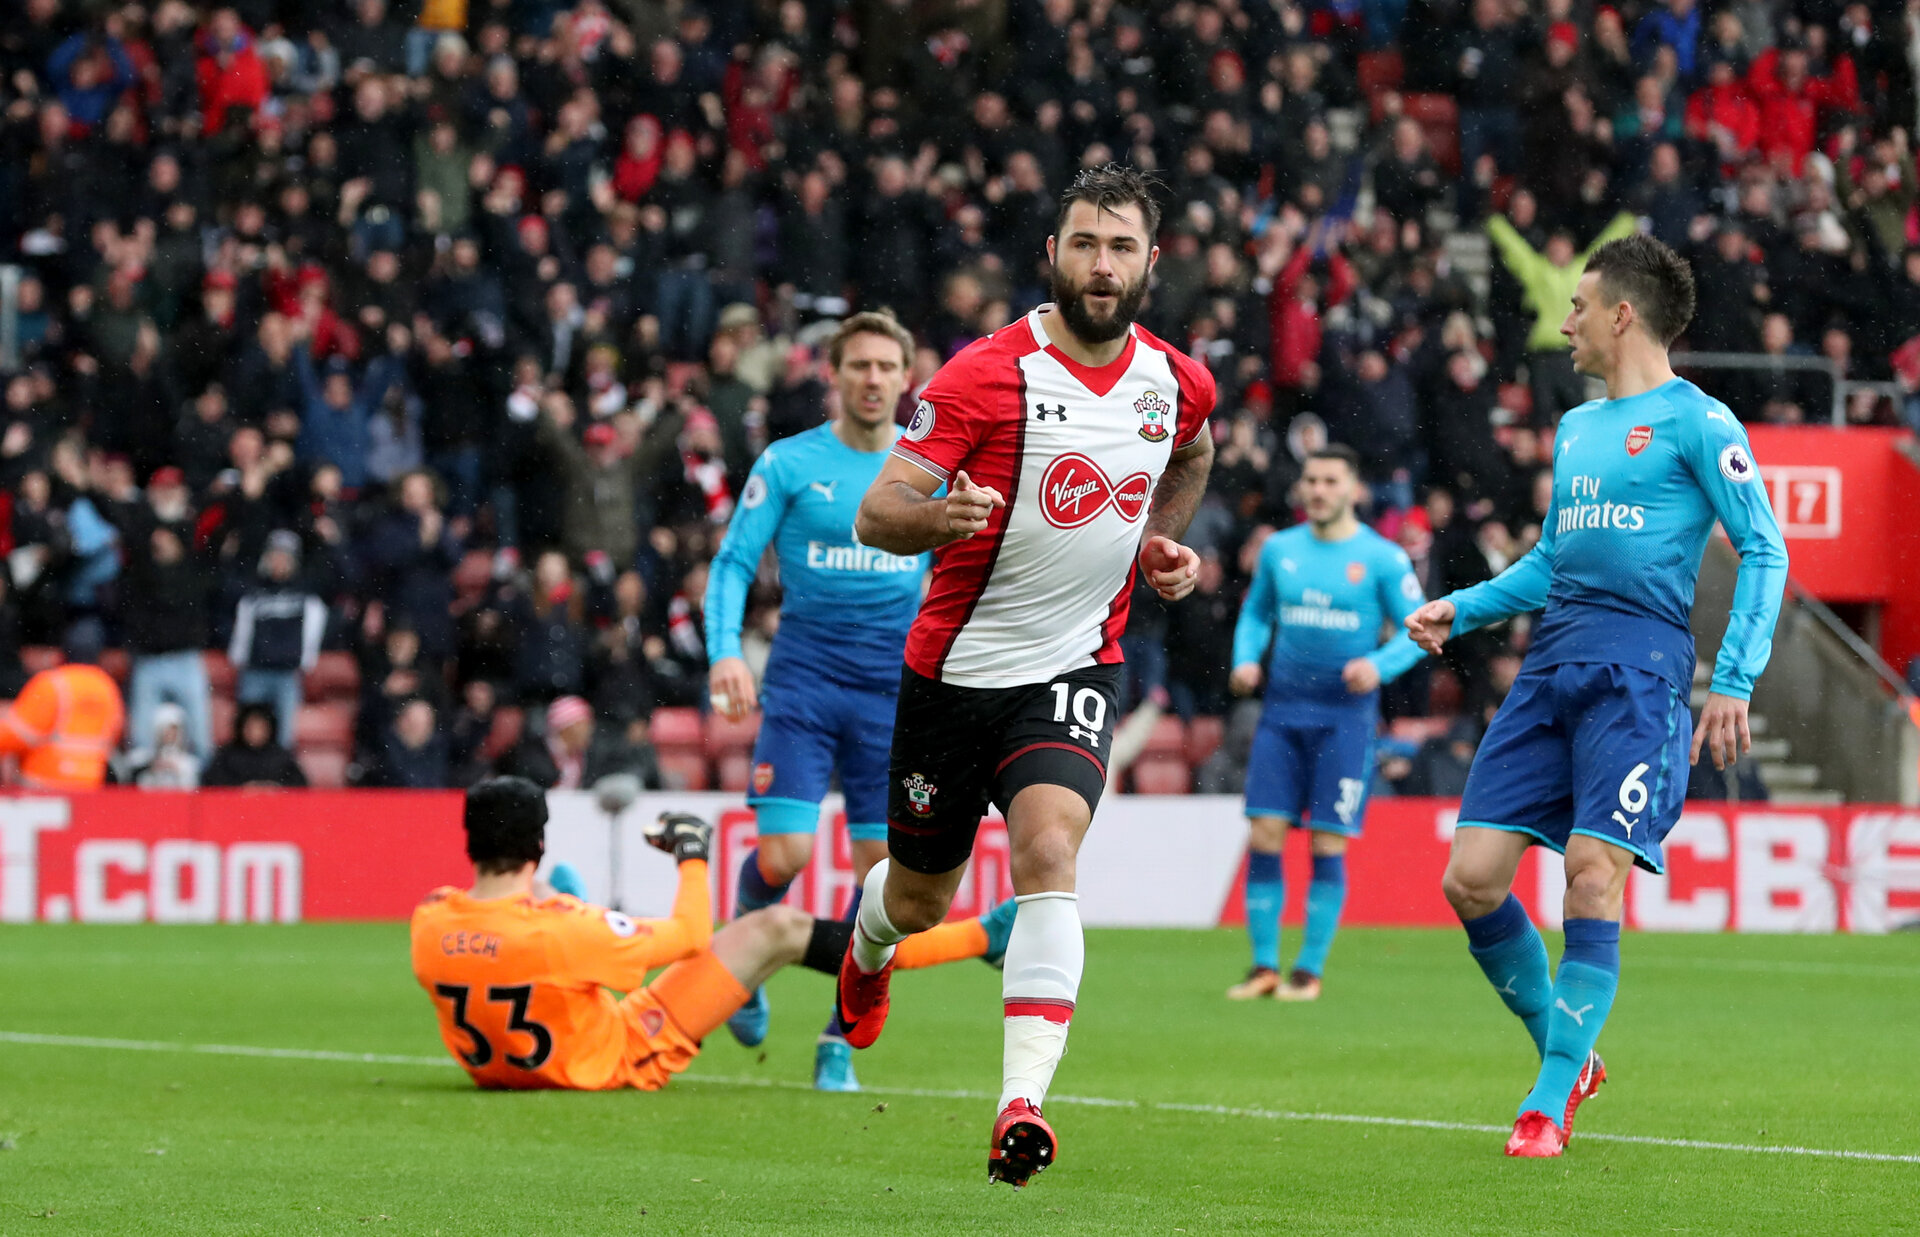 SOUTHAMPTON, ENGLAND - DECEMBER 10: Southampton's Charlie Austin celebrates opening the scoring during the Premier League match between Southampton and Arsenal at St Mary's Stadium on December 10, 2017 in Southampton, England. (Photo by Matt Watson/Southampton FC via Getty Images)